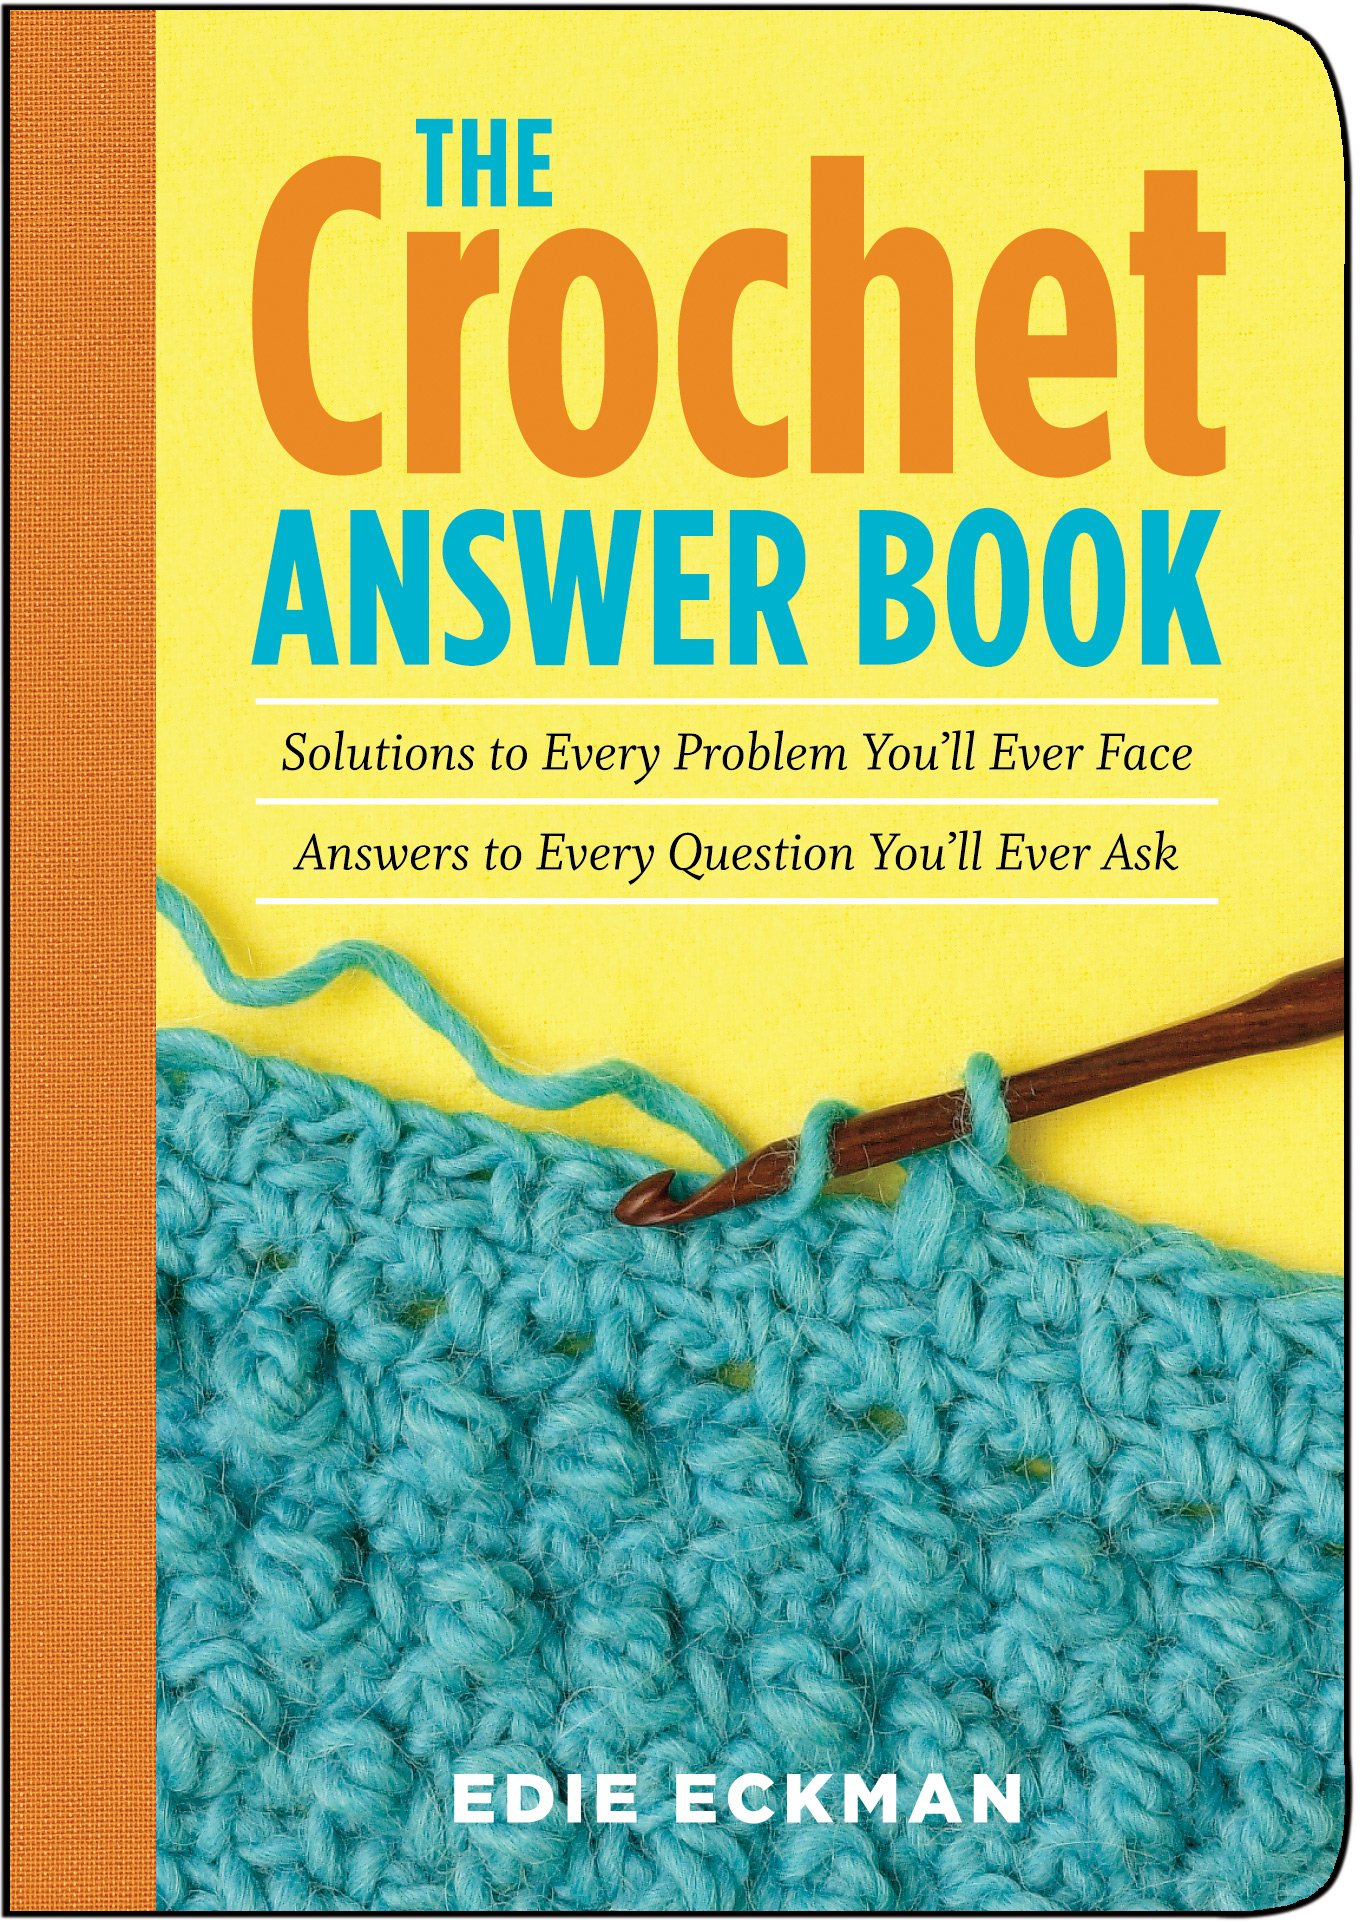 Book Cover Crochet Hook ~ The crochet answer book solutions to every problem you ll ever